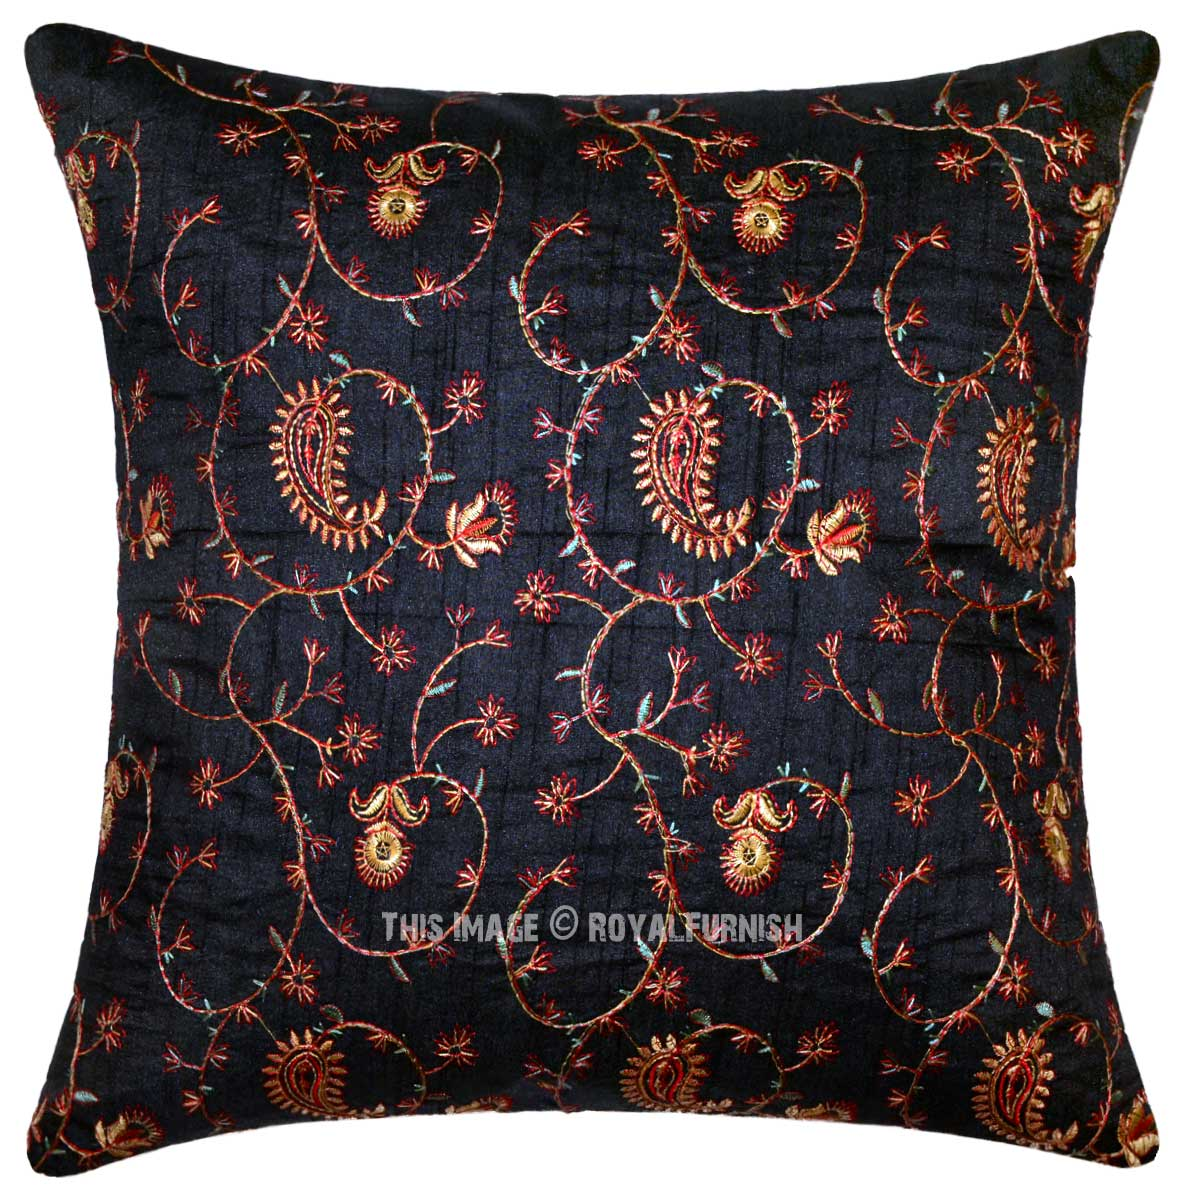 Embroidered State Throw Pillows : Black Hand Embroidered Floral Silk Throw Pillow - RoyalFurnish.com